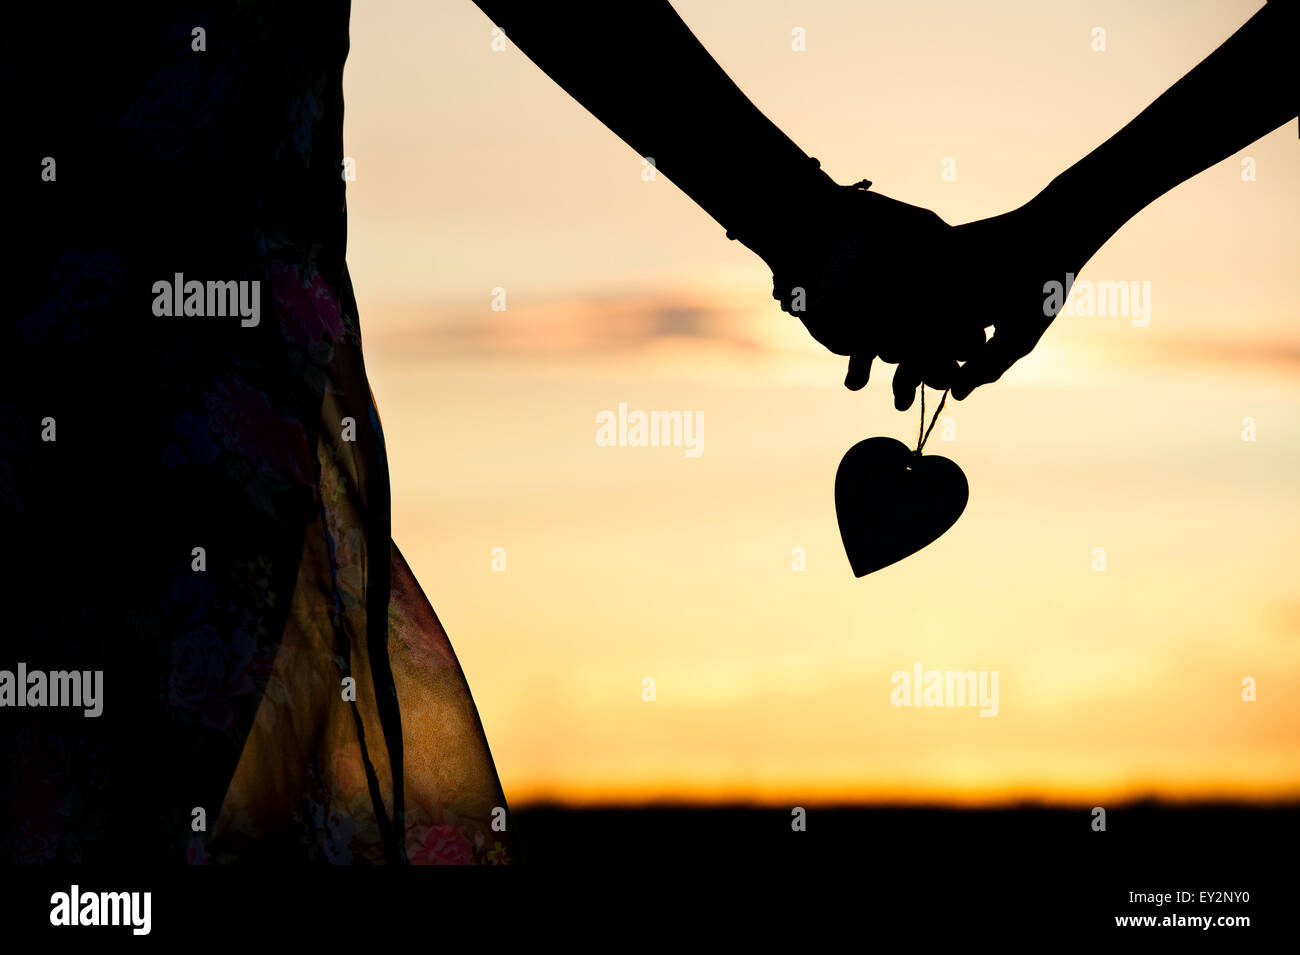 Boy And Girl Holding Hands Silhouette Stock Photos & Boy And Girl ...